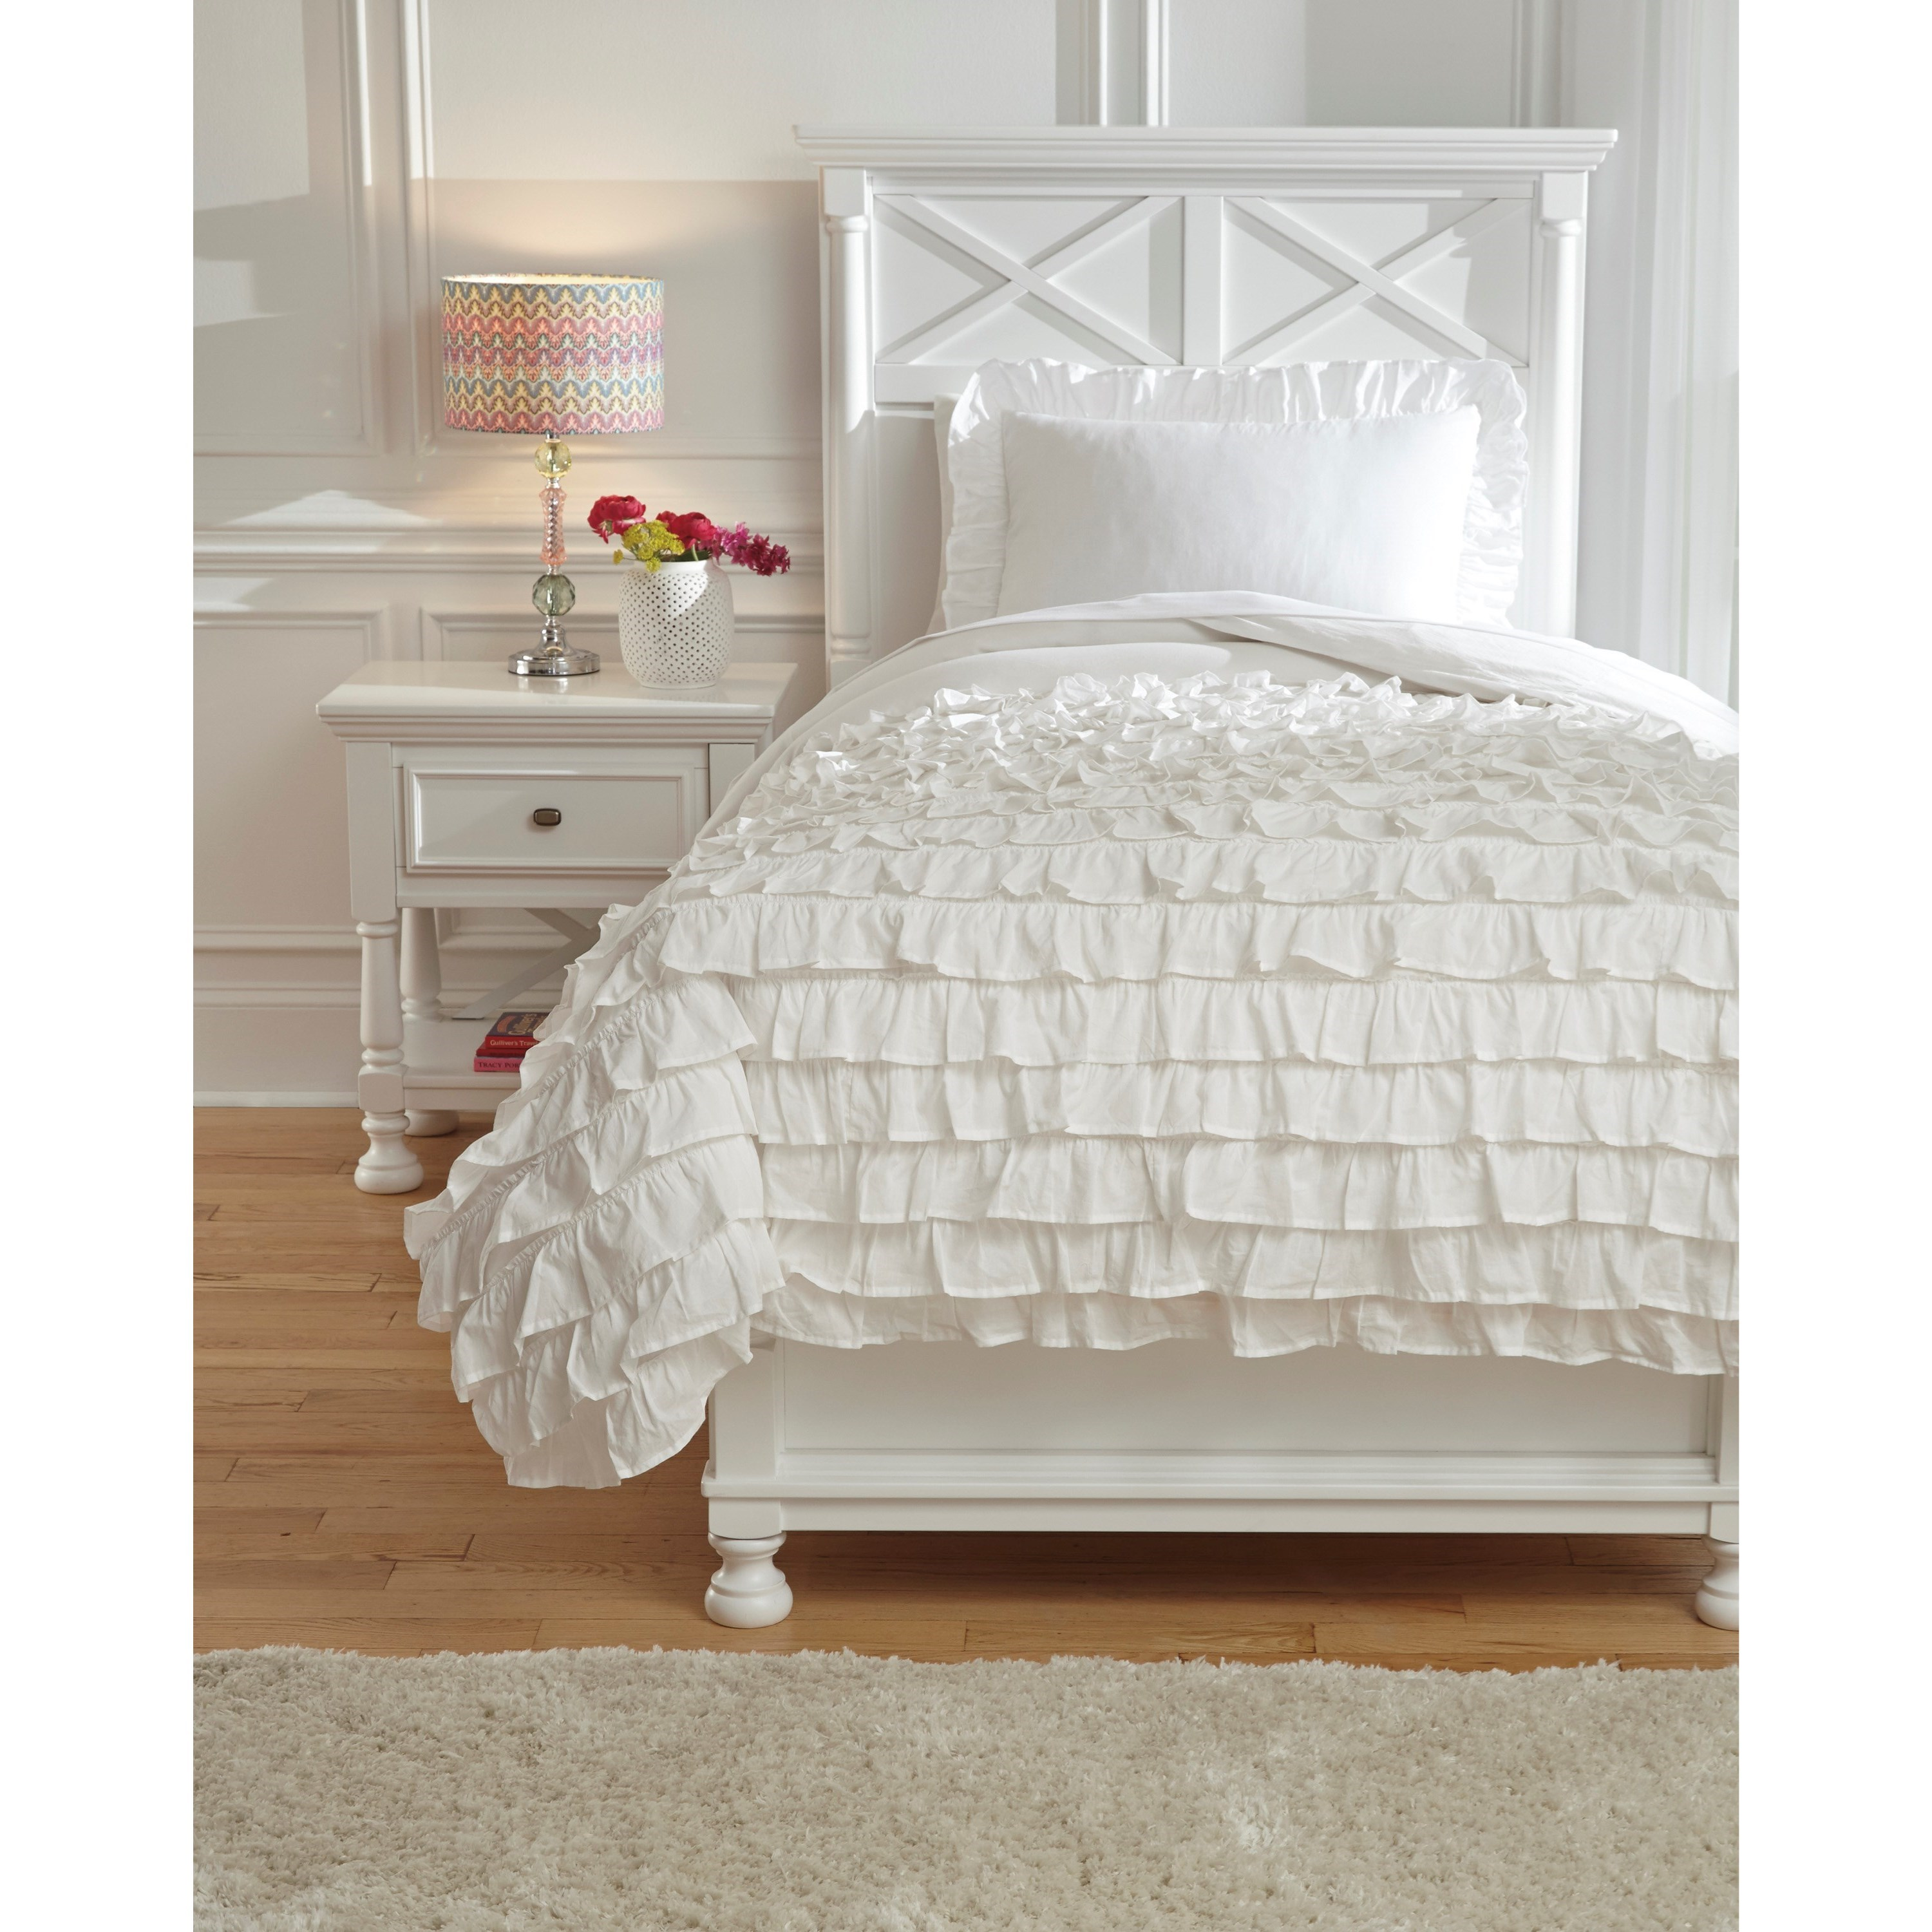 Signature Design by Ashley Bedding Sets Twin Aaronas White Duvet Cover Set - Item Number: Q746001T